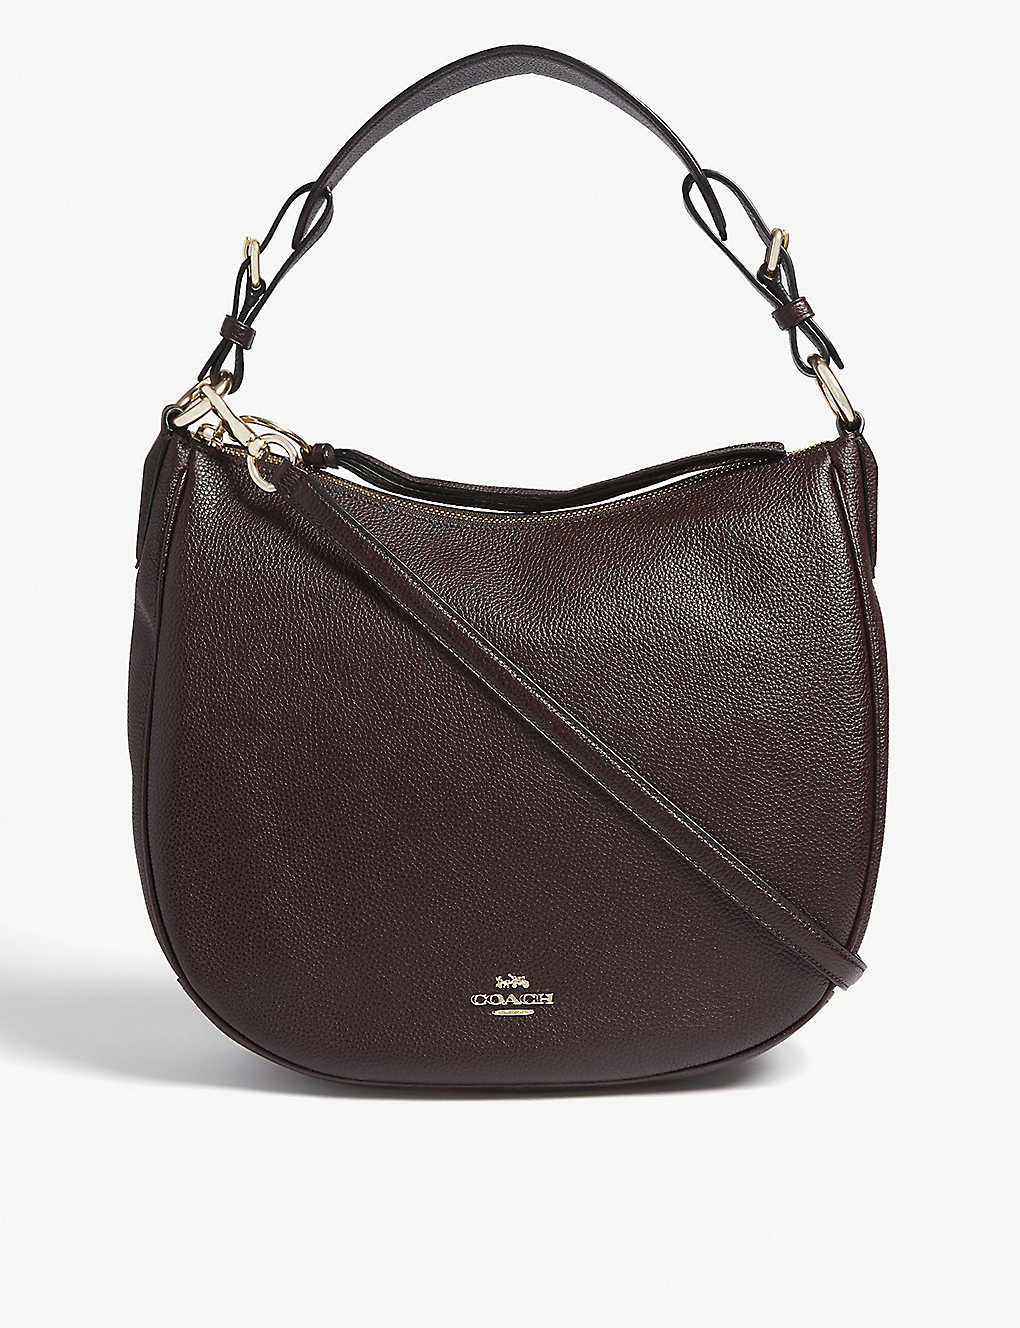 COACH: Sutton leather hobo bag